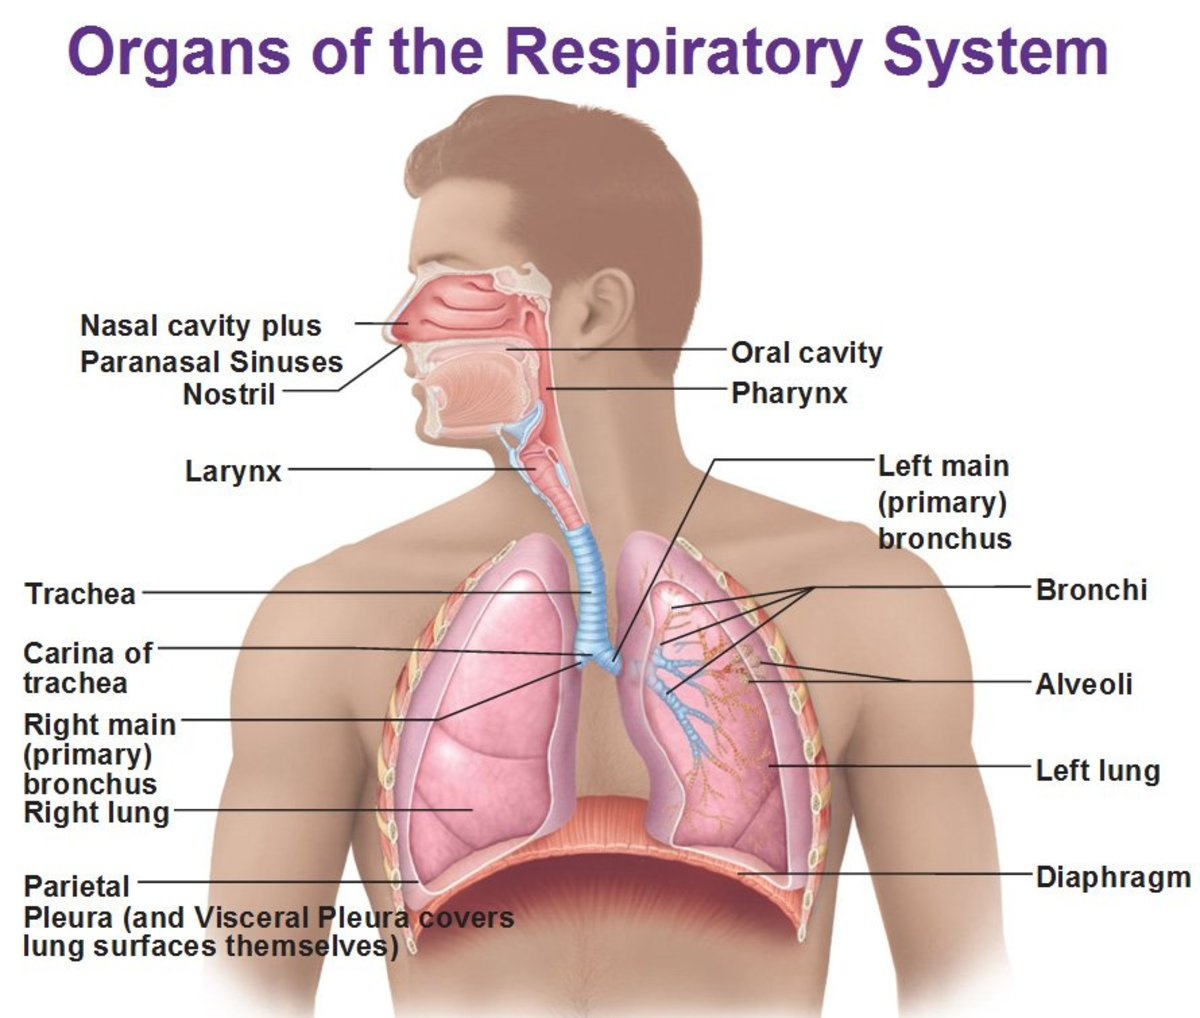 The Respiratory System of Human | HubPages